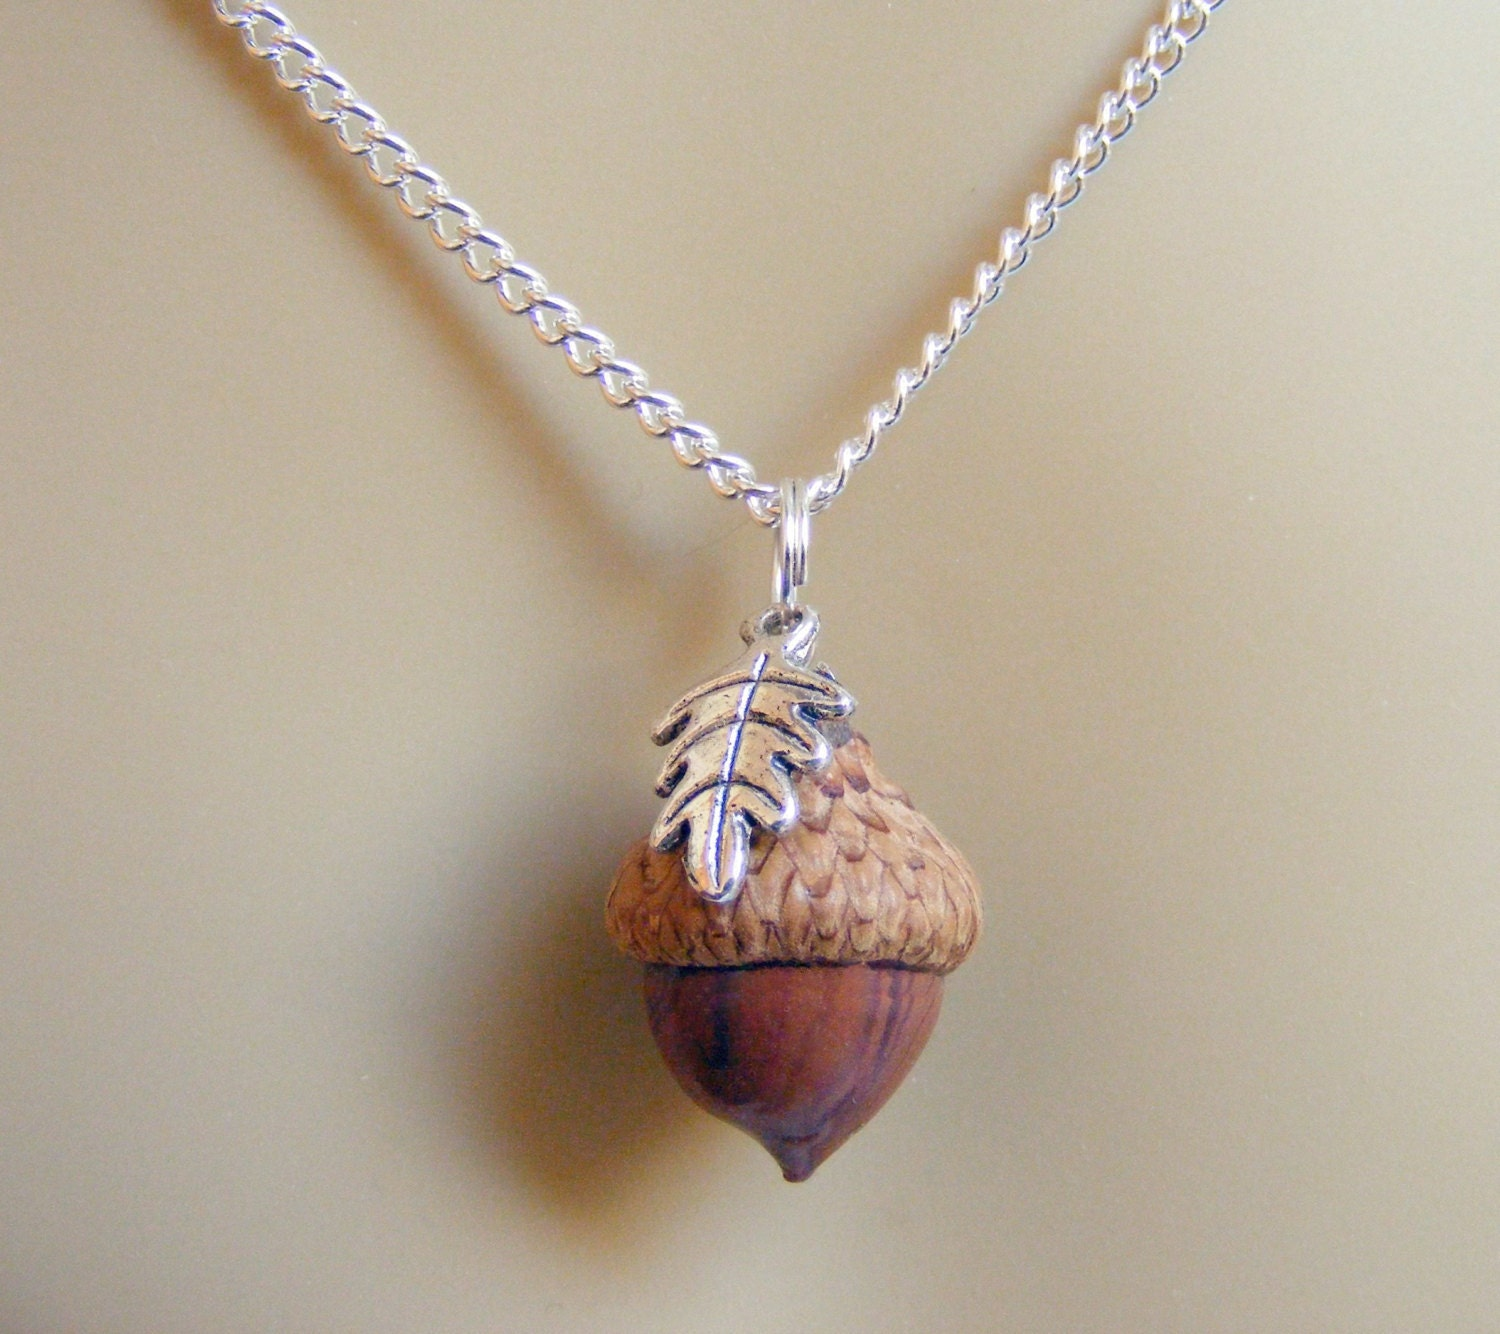 acorn necklace lucky charm necklace acorn charm